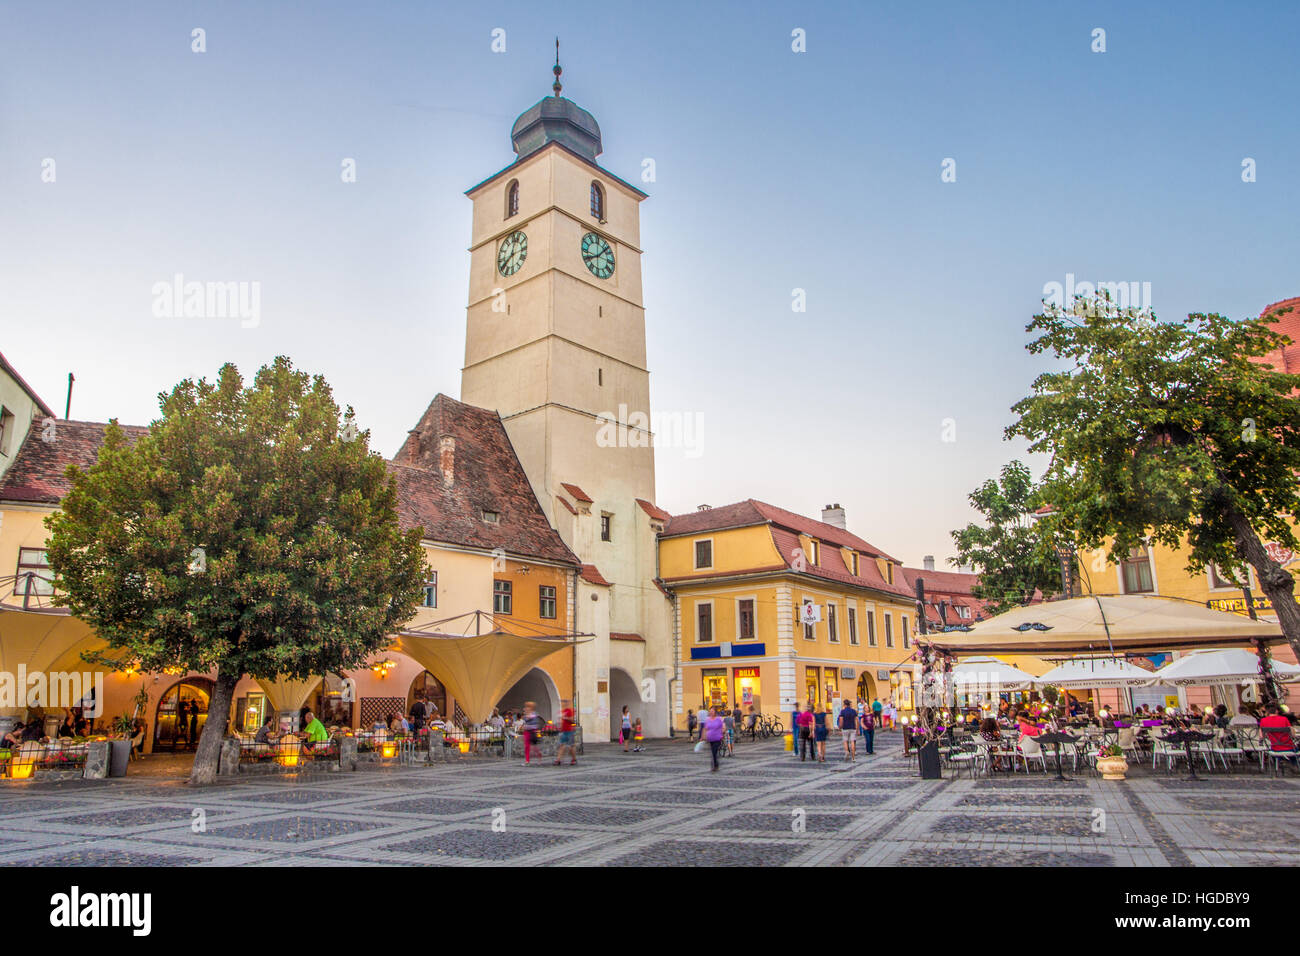 Romania, Sibiu City, Mare Square, Sfatului Tower - Stock Image